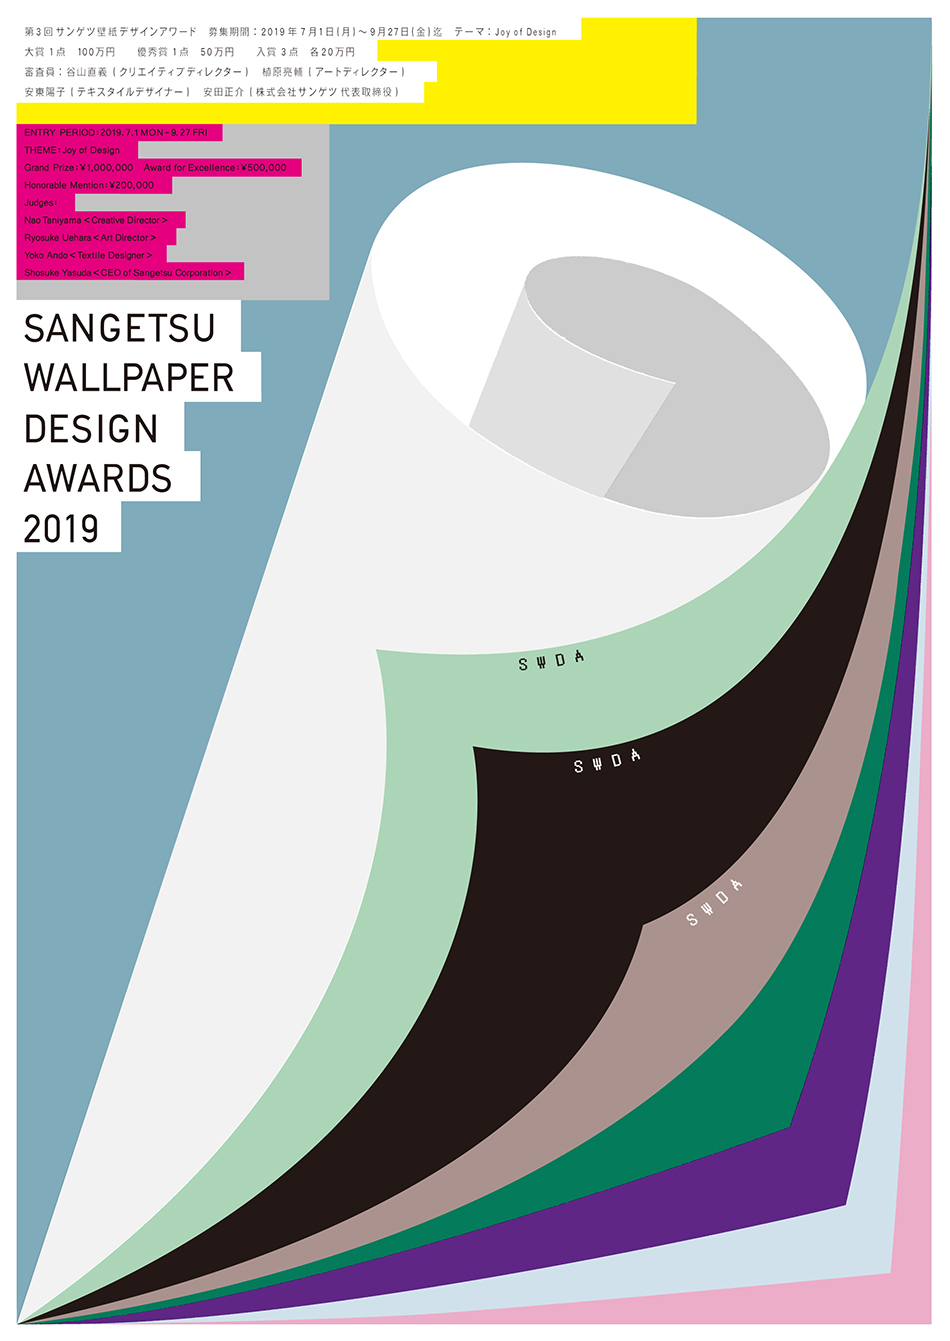 SANGETSU WALLPAPER DESIGN AWARDS 2019